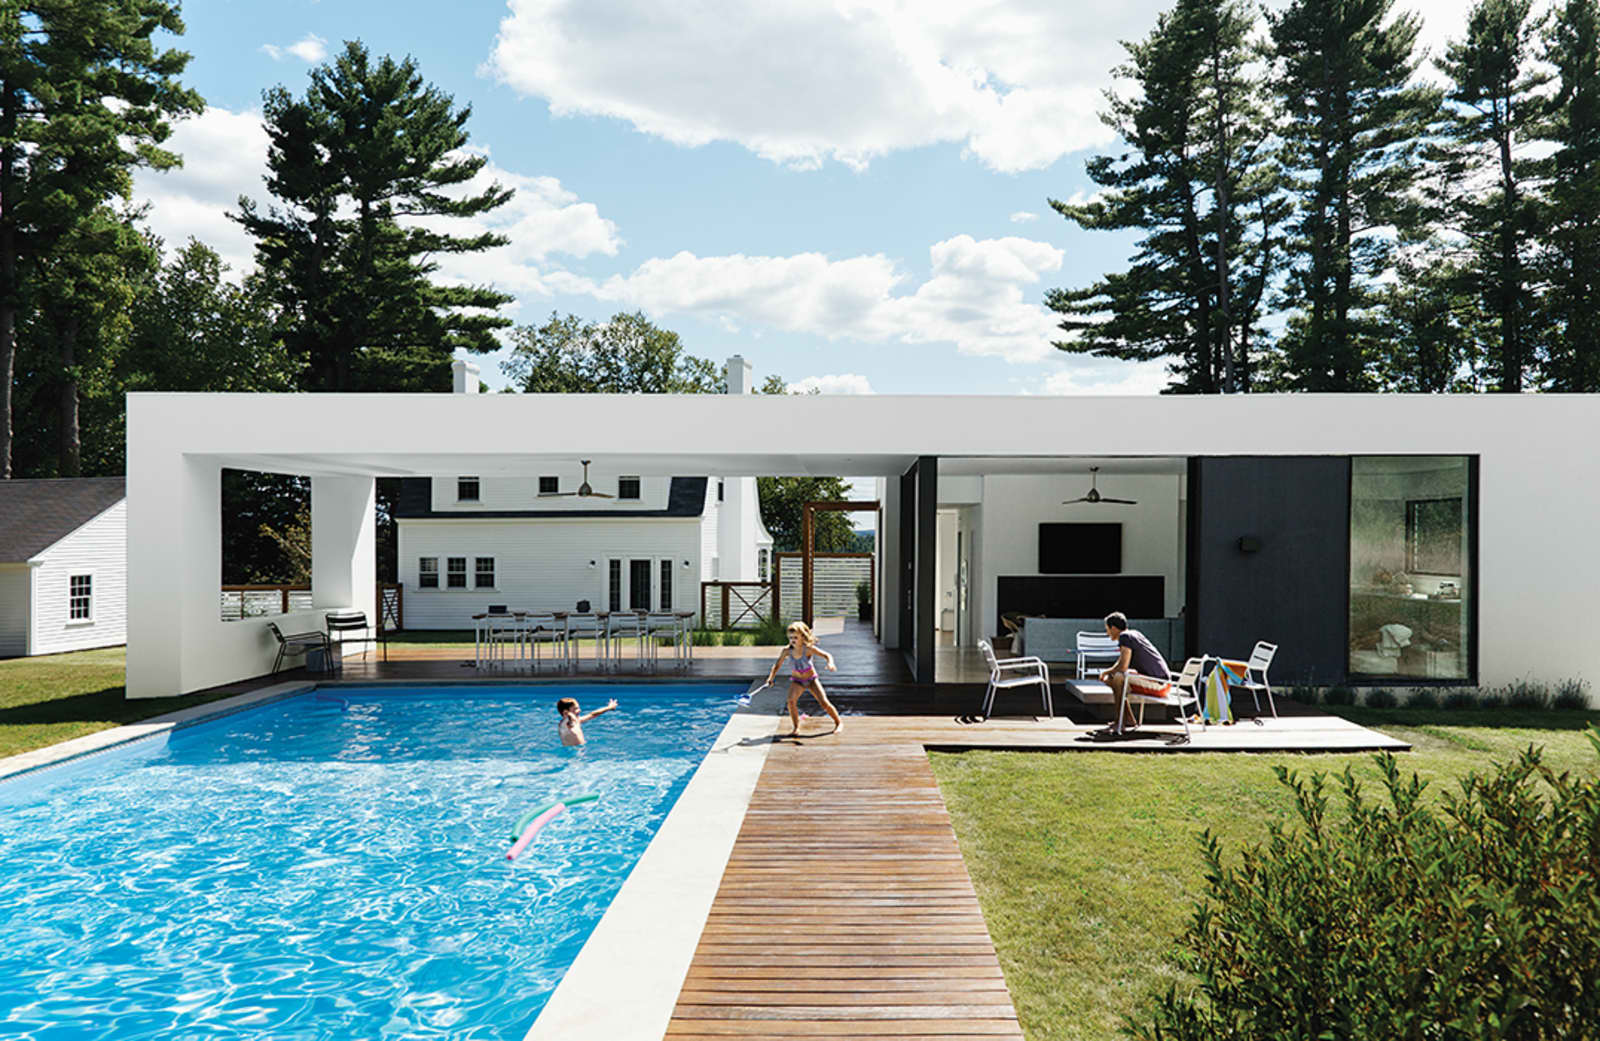 The 1000 square foot modern pool house thats actually just my dream house